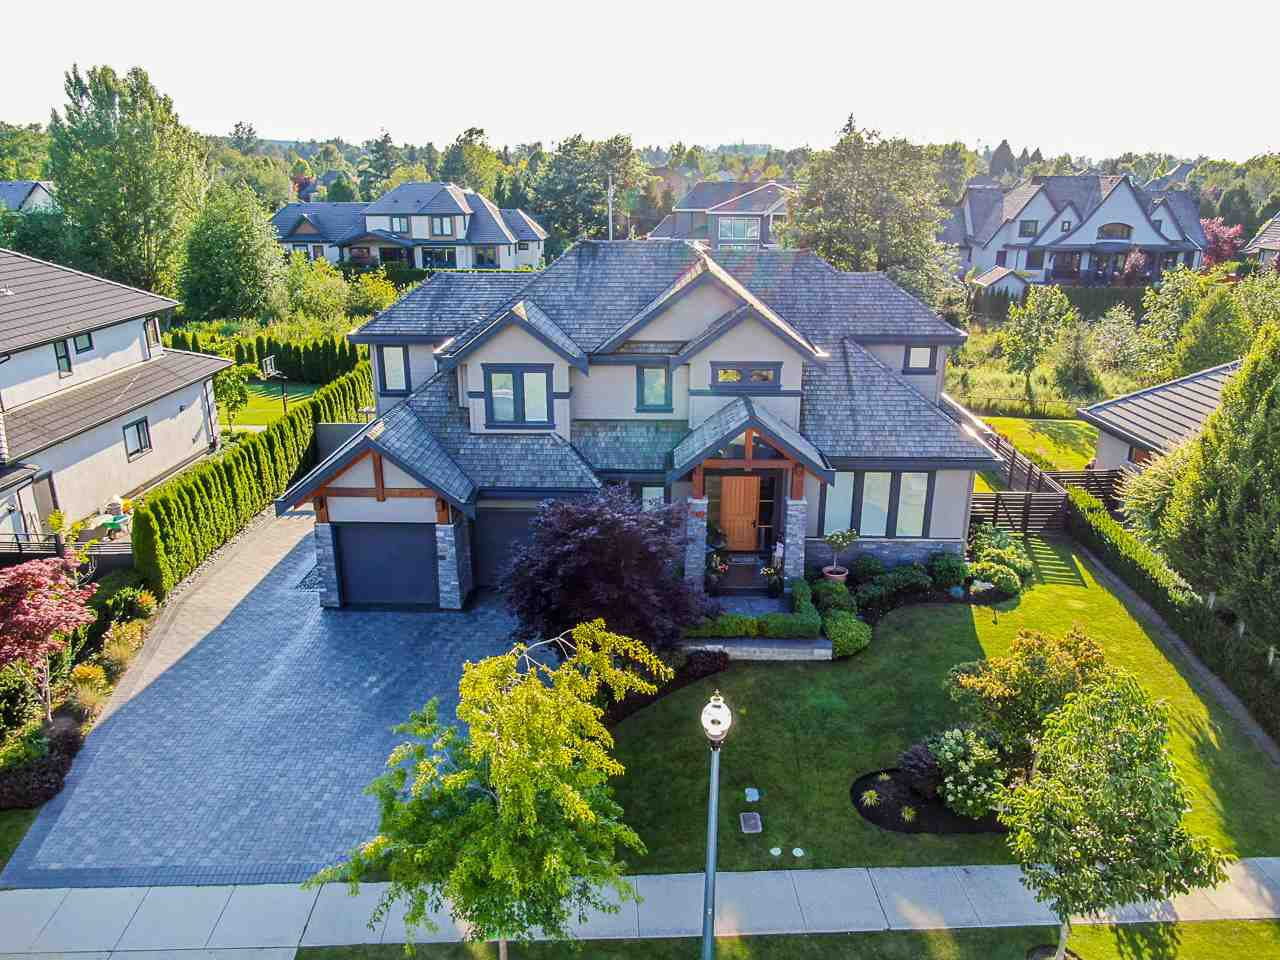 """Main Photo: 3425 164A Street in Surrey: Morgan Creek House for sale in """"Wills Brook at Morgan Greek"""" (South Surrey White Rock)  : MLS®# R2526551"""